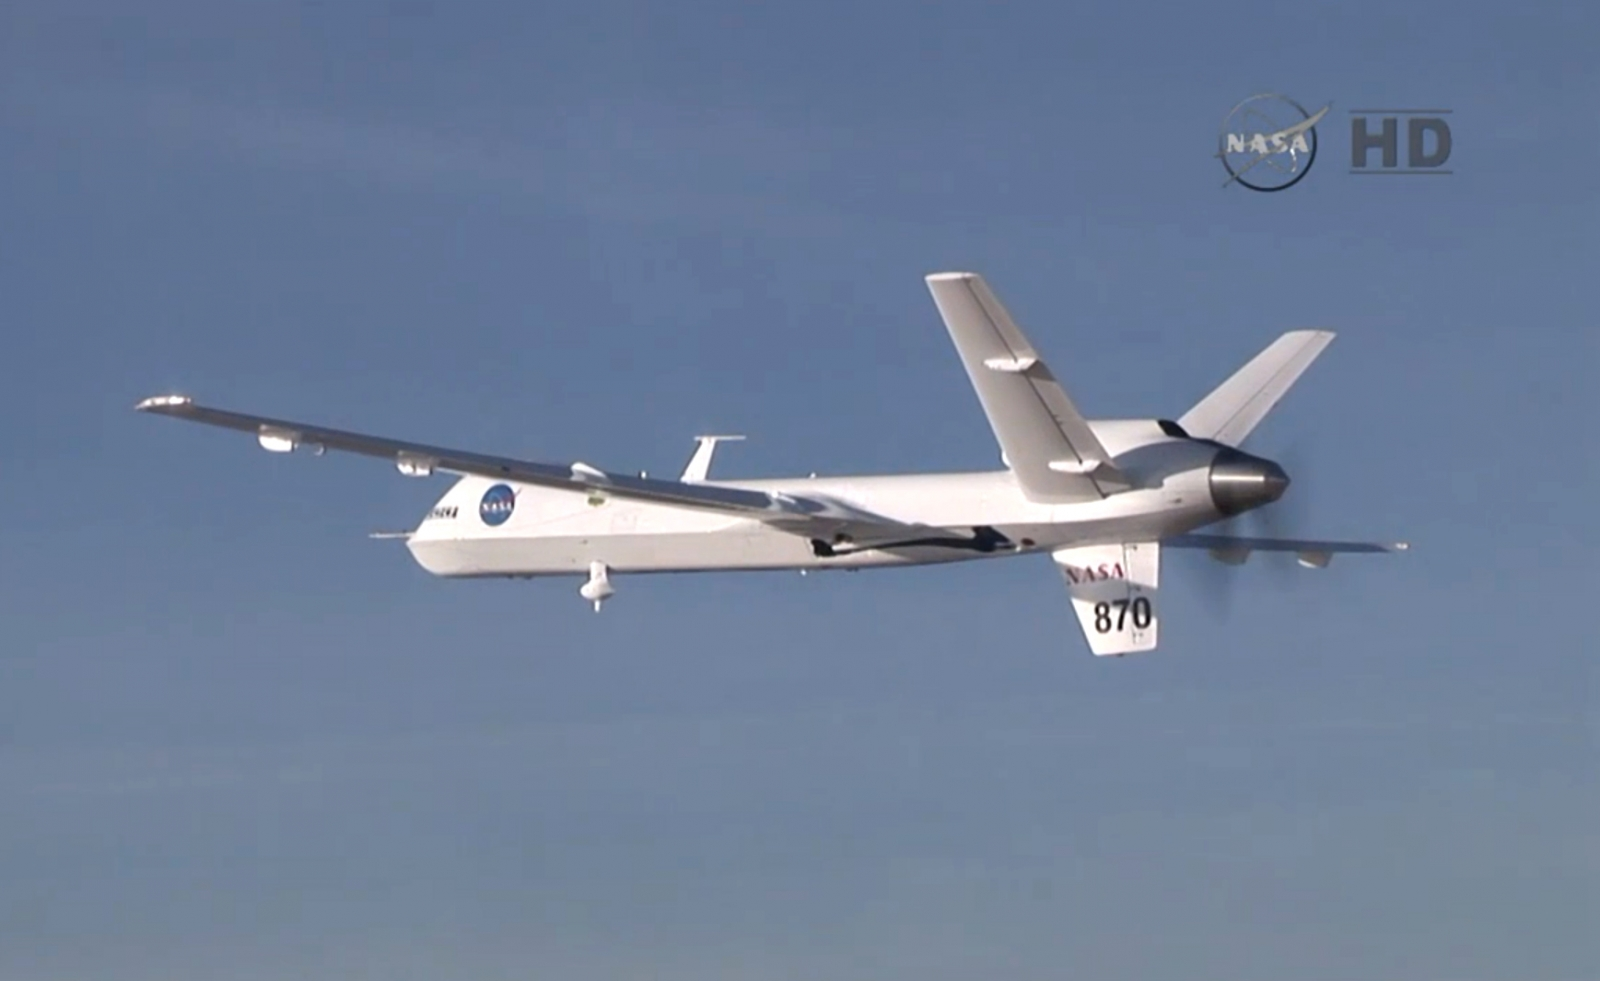 Nasas Ikhana unmanned aerial vehicle that took video footage from the air over the Pacific ocean